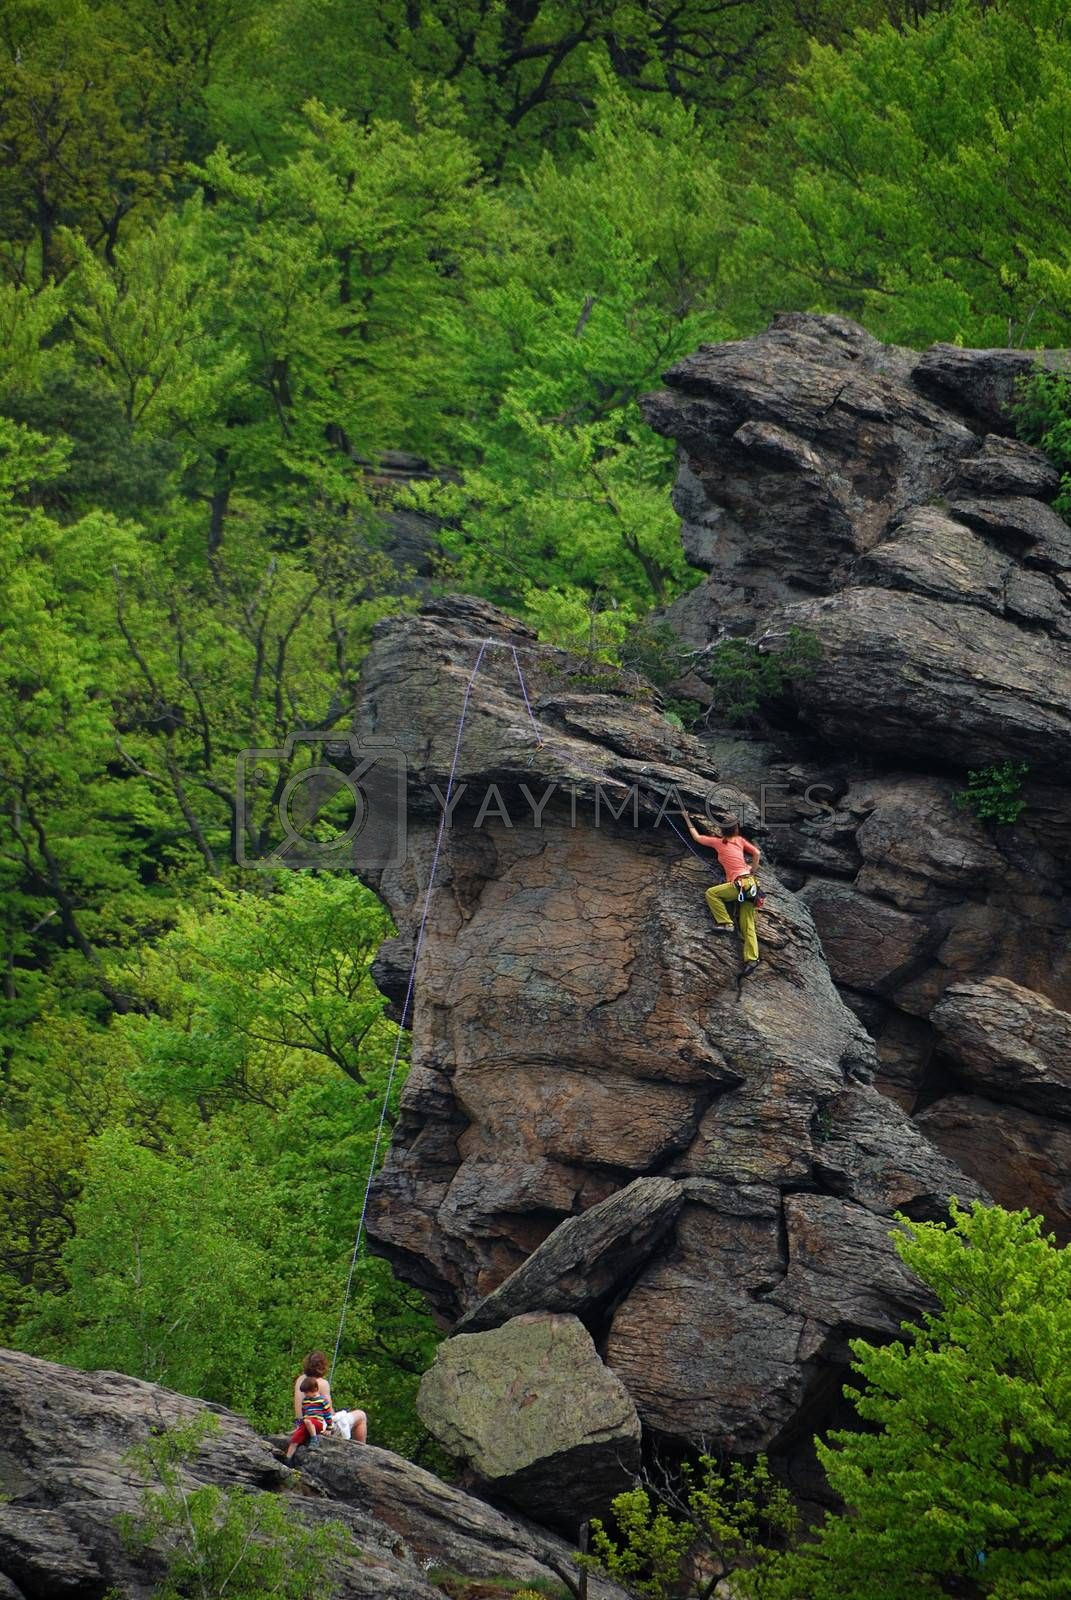 climb high rocks in forest